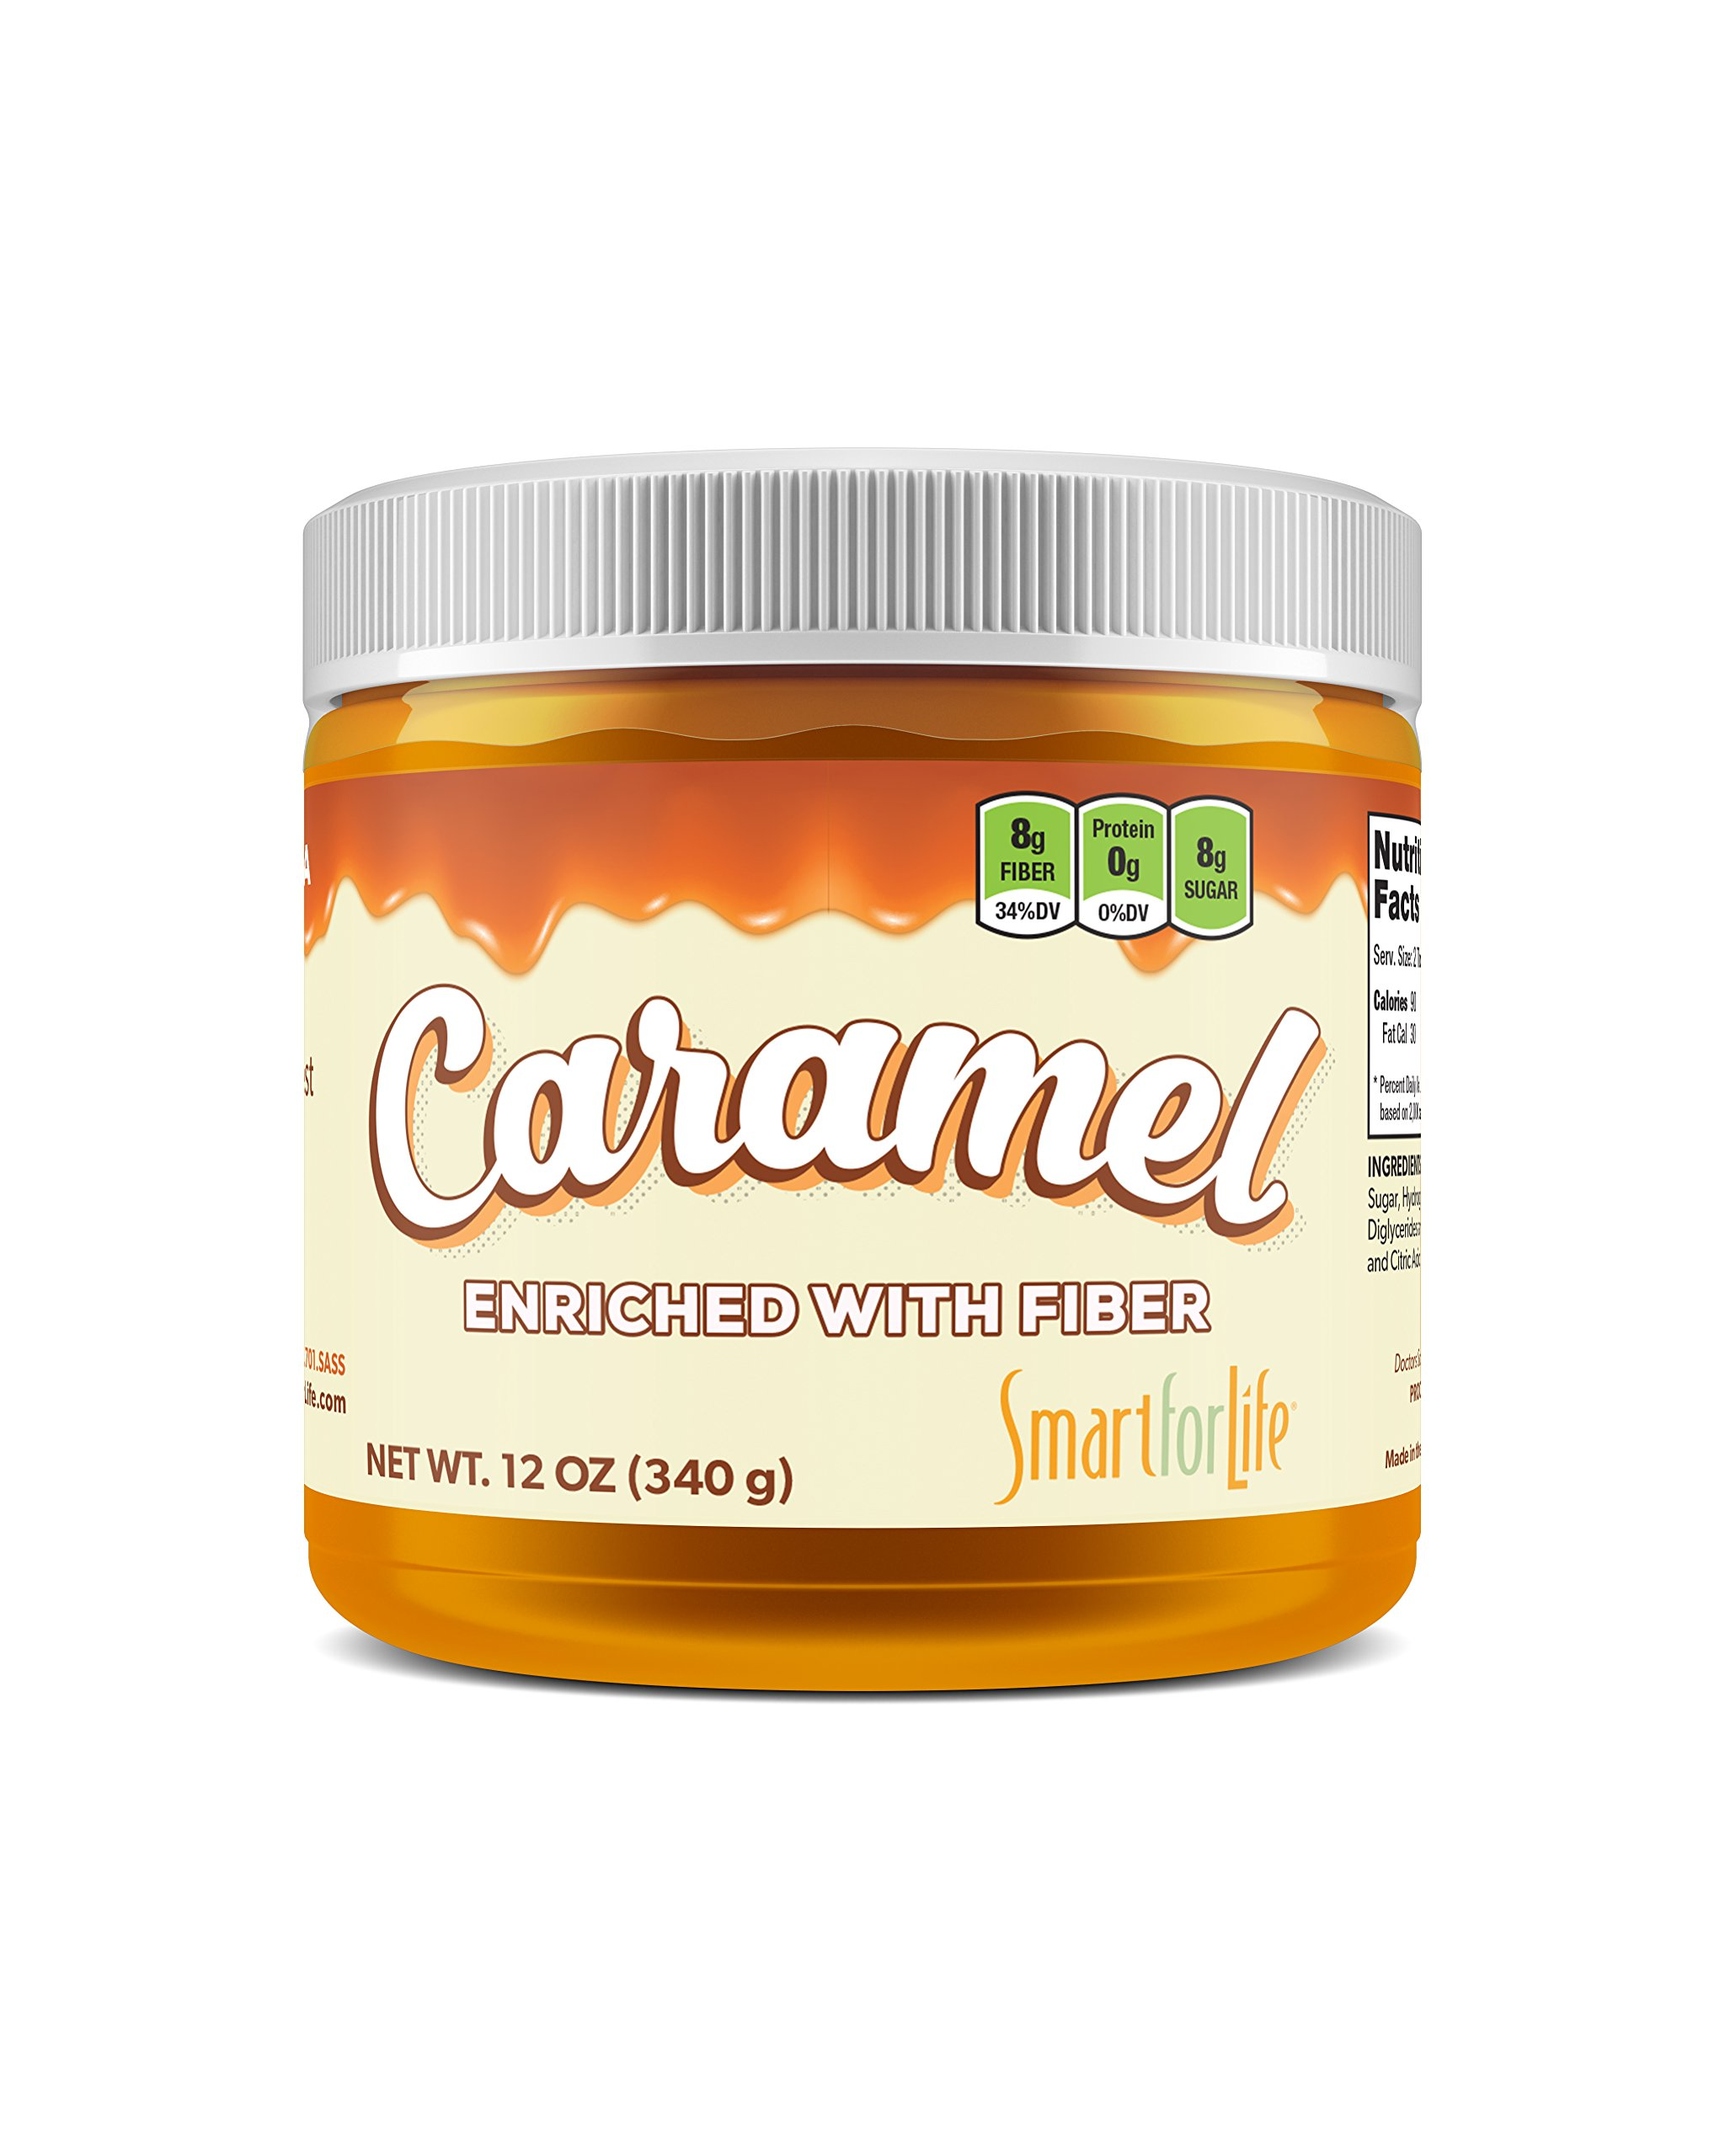 Caramel Enriched with Fiber (Pack of 2) Compare to Honest Syrup, Caramel Sauce. Sugar free, Low Carb, No preservatives. Thick and Rich. Sugar Alcohol free, Gluten Free, Dessert and Breakfast Topping.